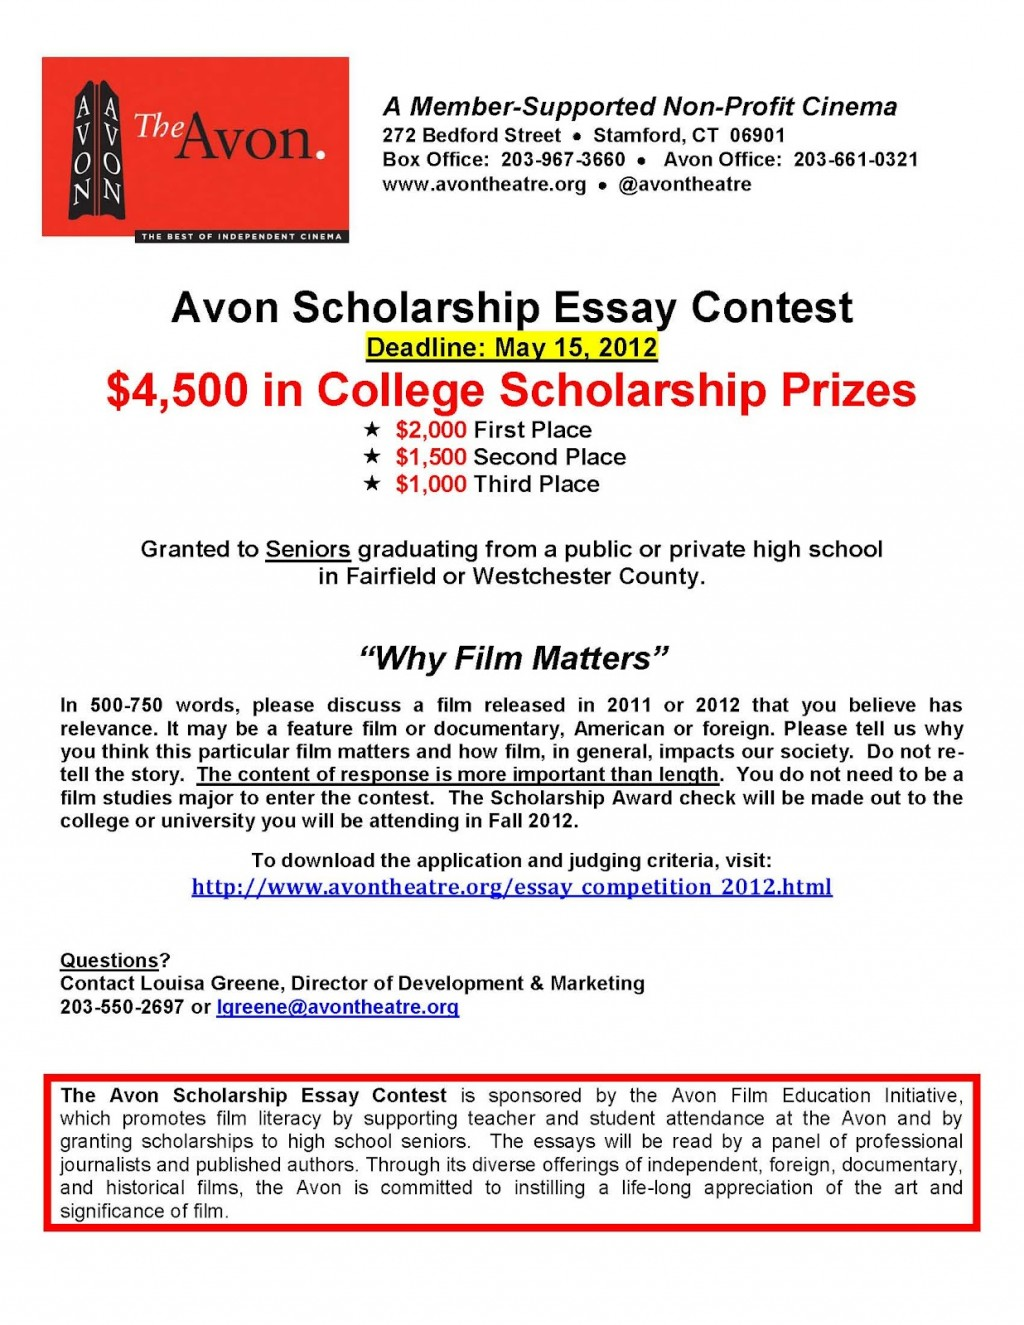 002 No Essay Collegeip Prowler Freeips For High School Seniors Avonscholarshipessaycontest2012 In Texas California Class Of Short Example Wondrous Scholarship Scholarships Freshman 2019 Large